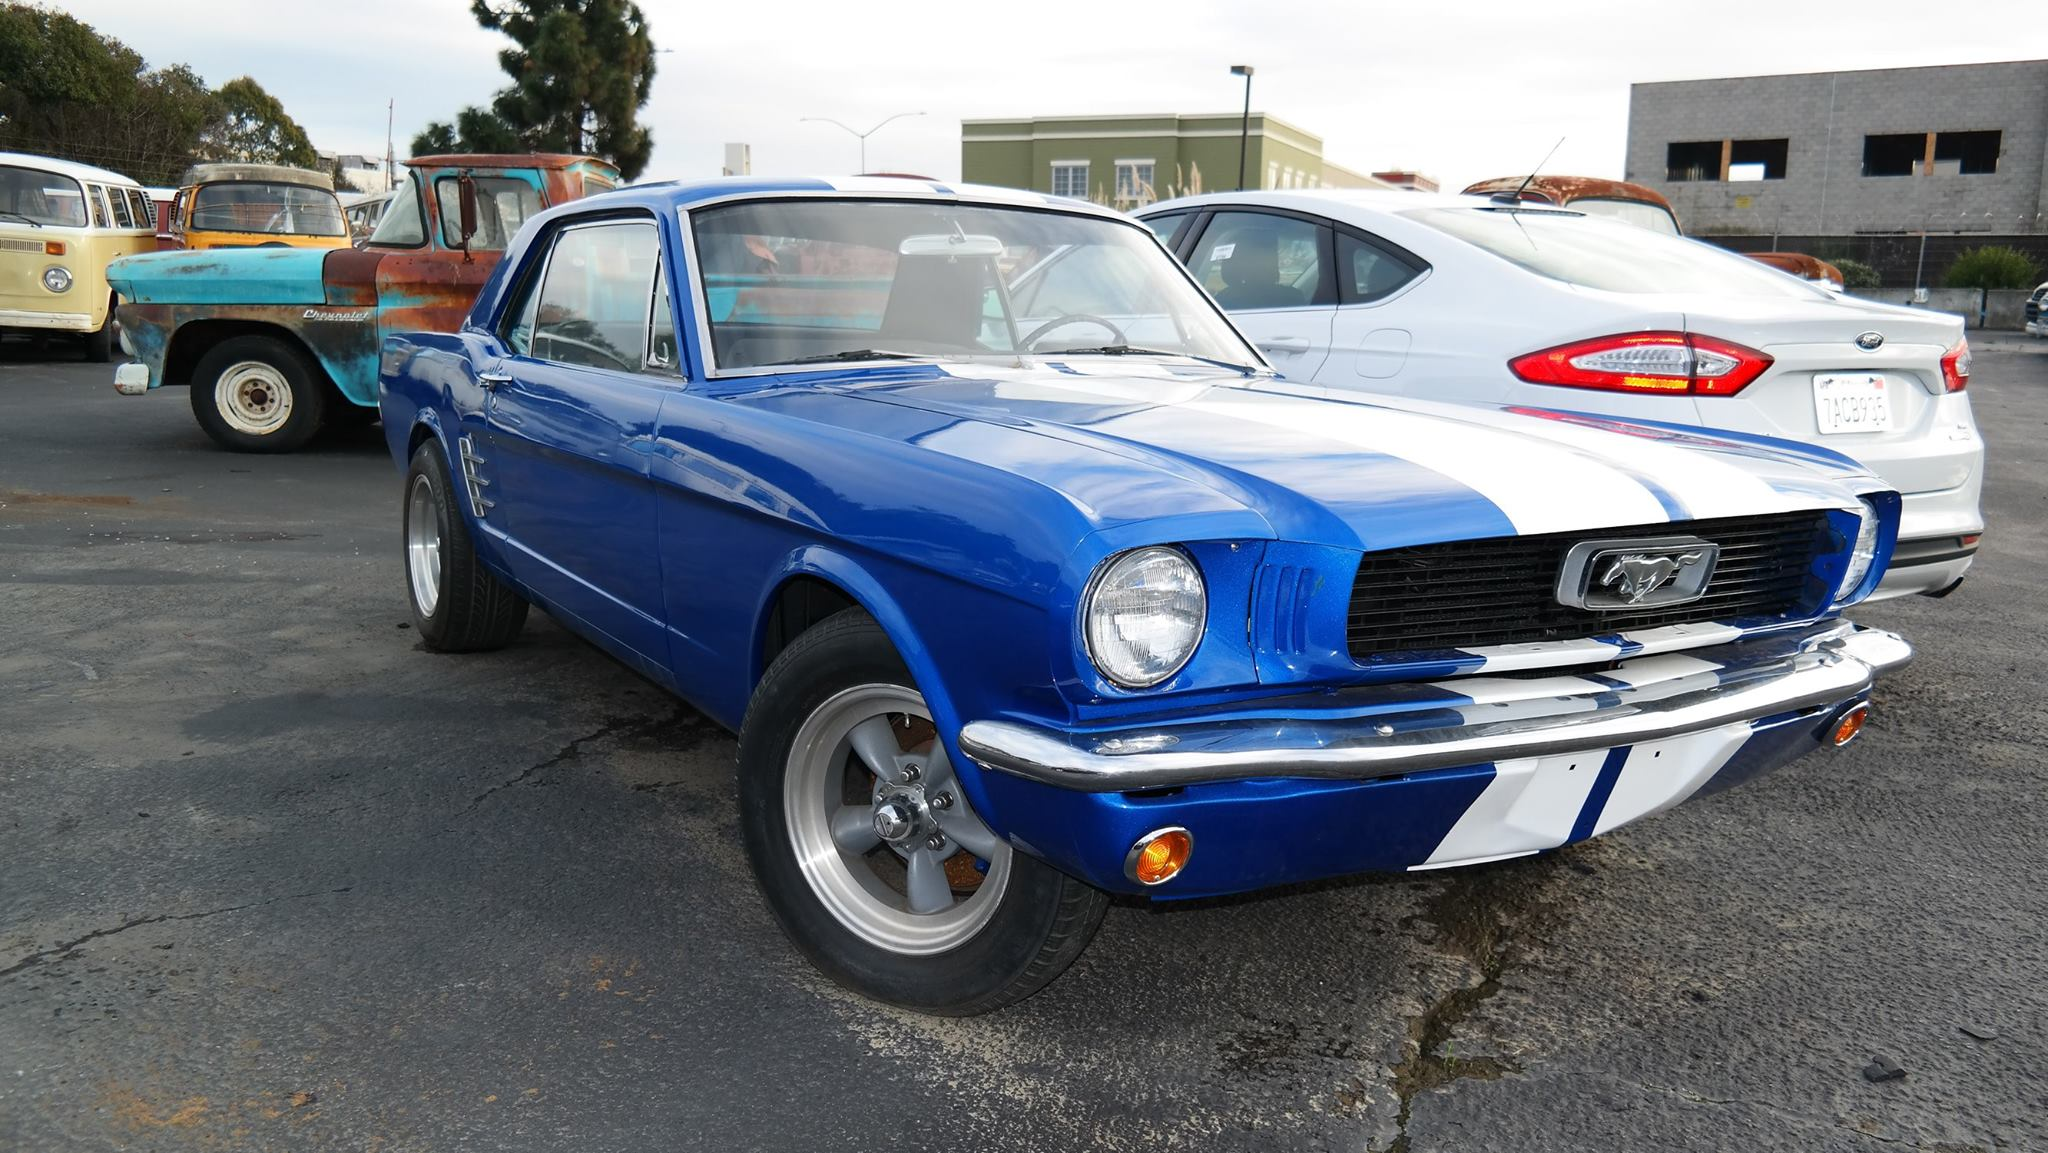 Mustang shipping from the USA to Australia